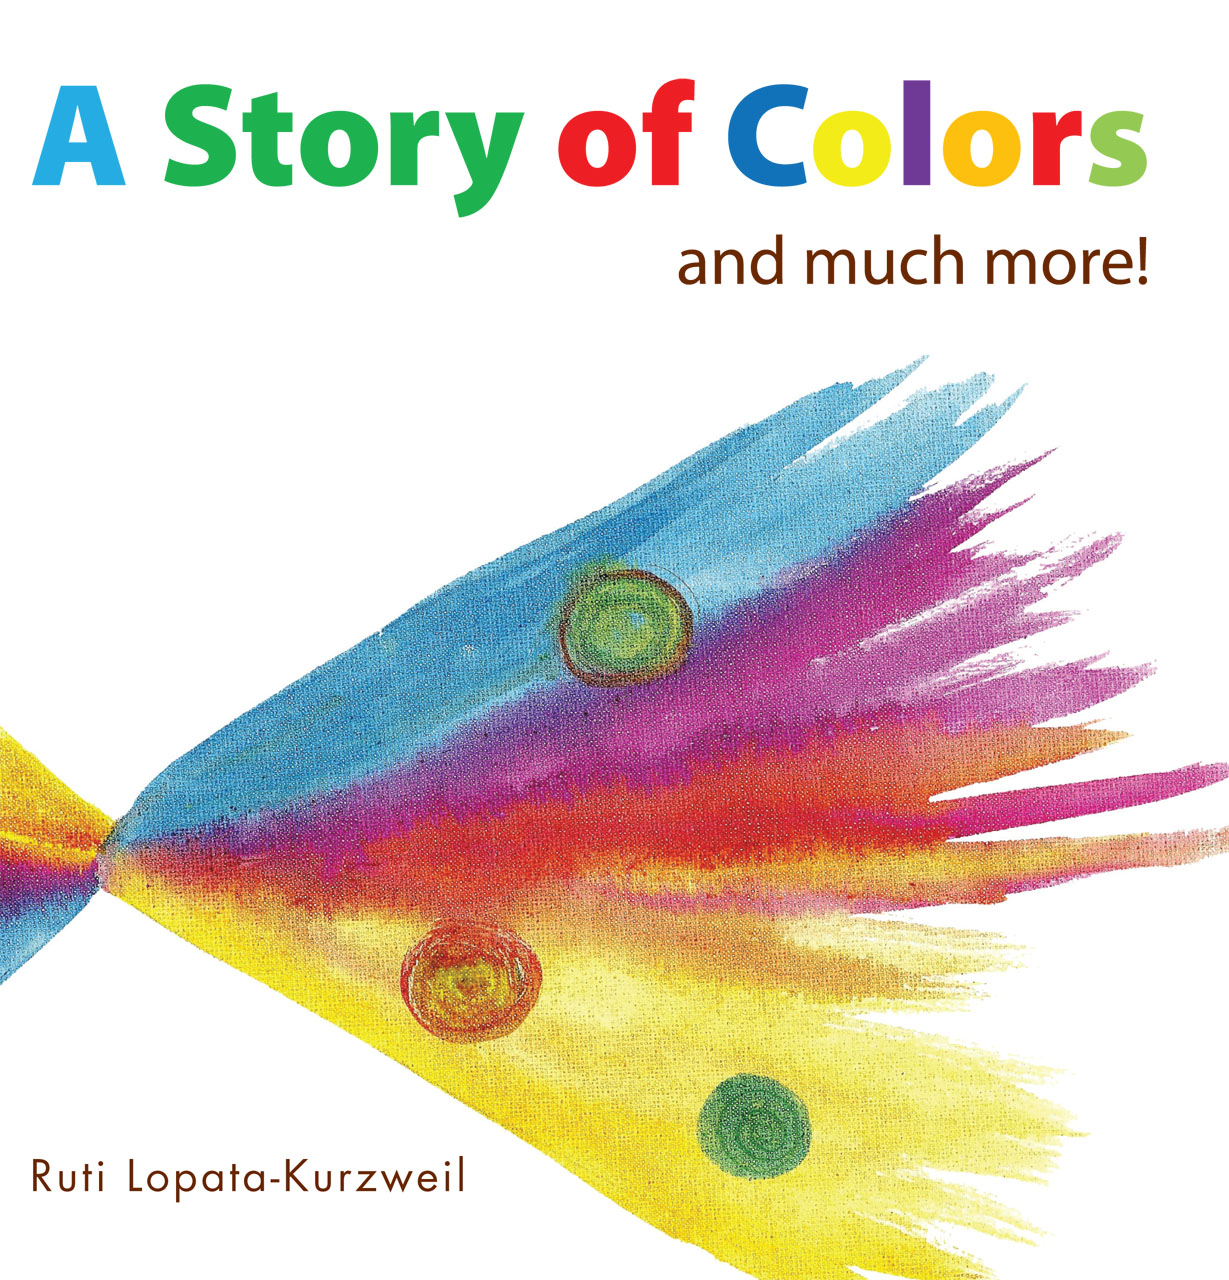 A Story of Colors